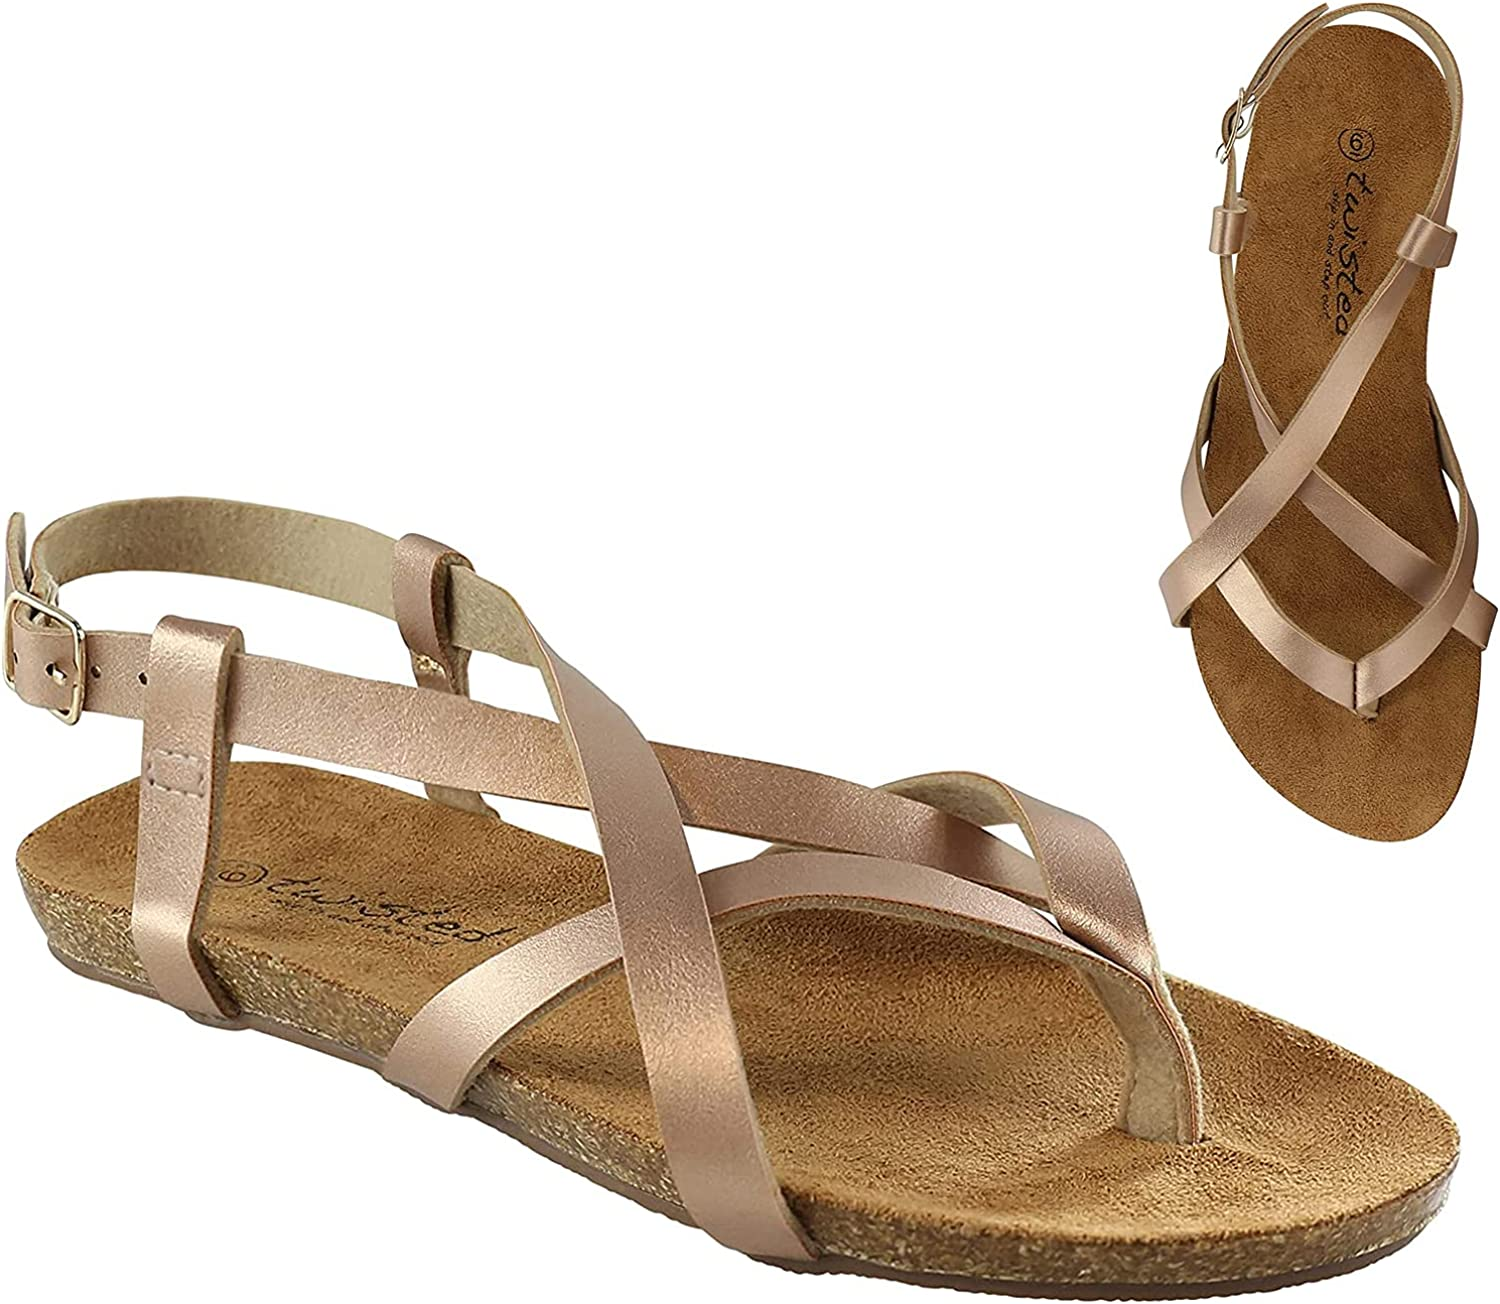 Twisted Gretta Fashion Criss Cross Straps Footbed Slip-on Sandals for Women